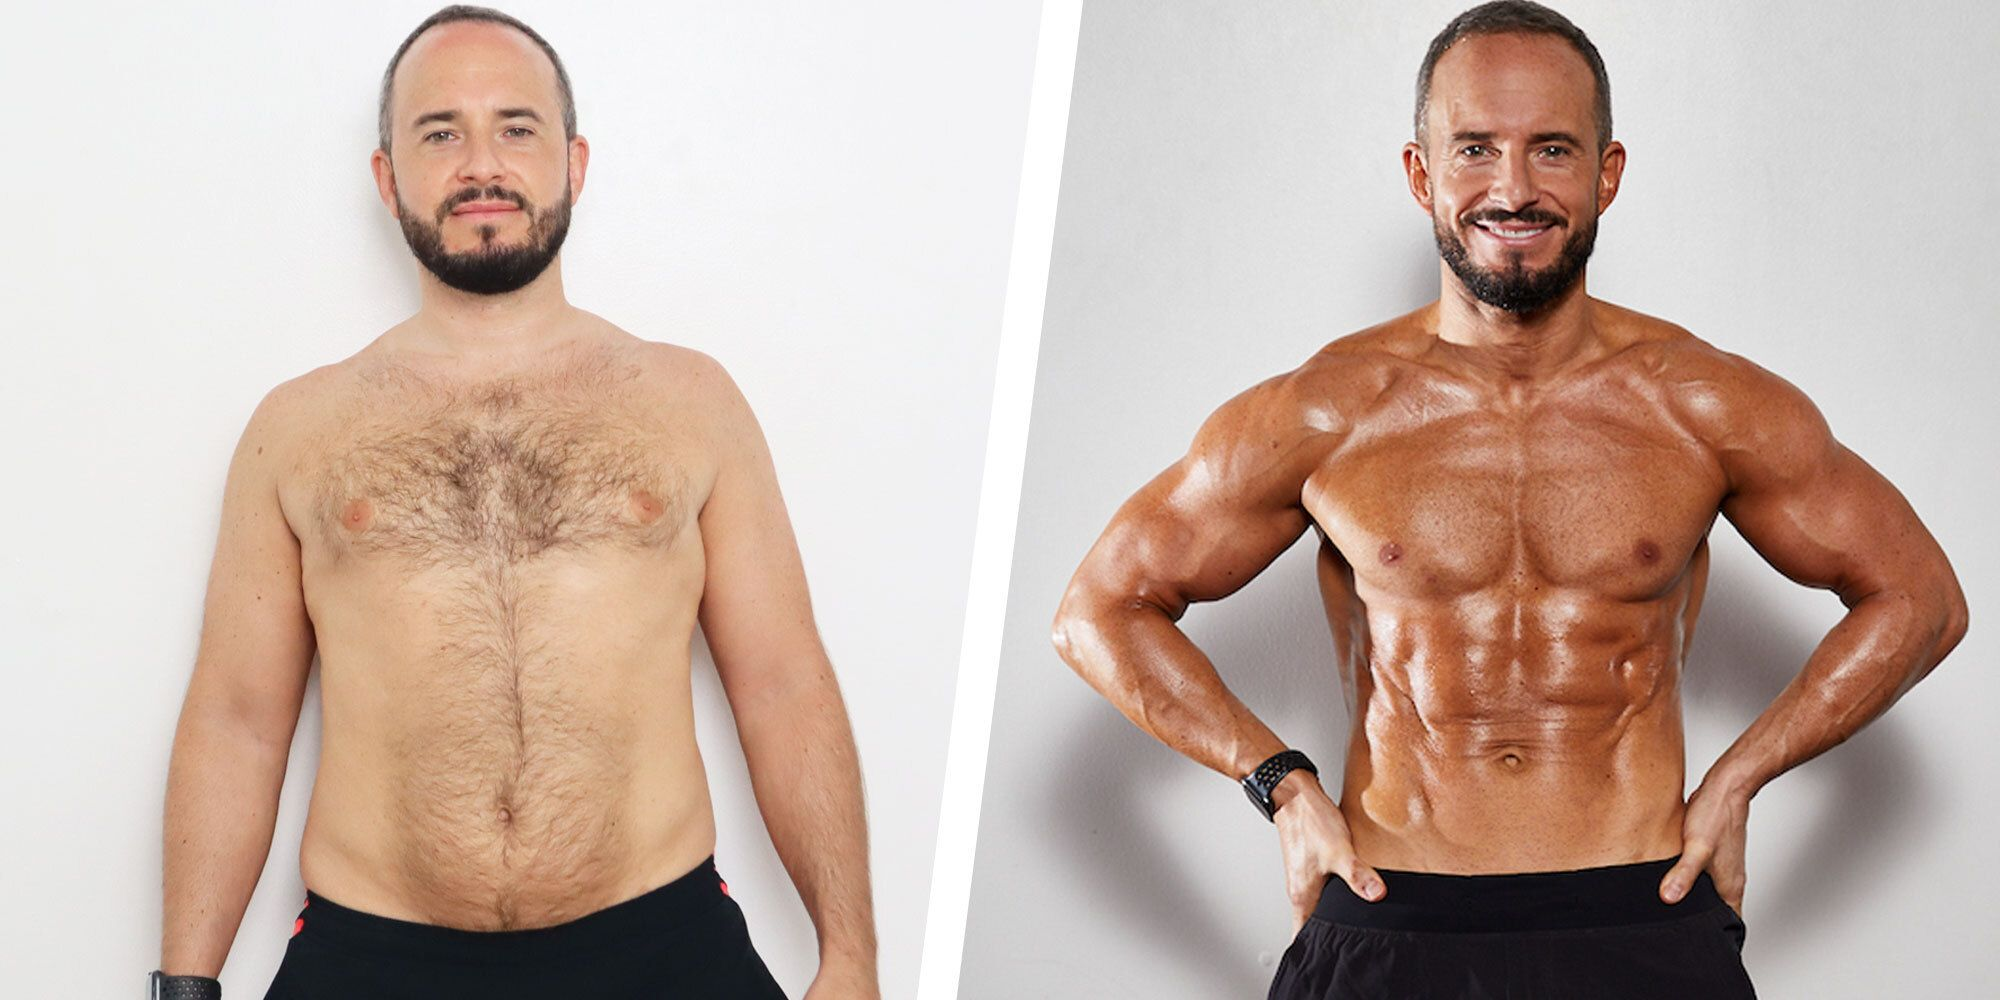 How Changing My Mindset Helped Me Lose 35 Pounds and Get Ripped